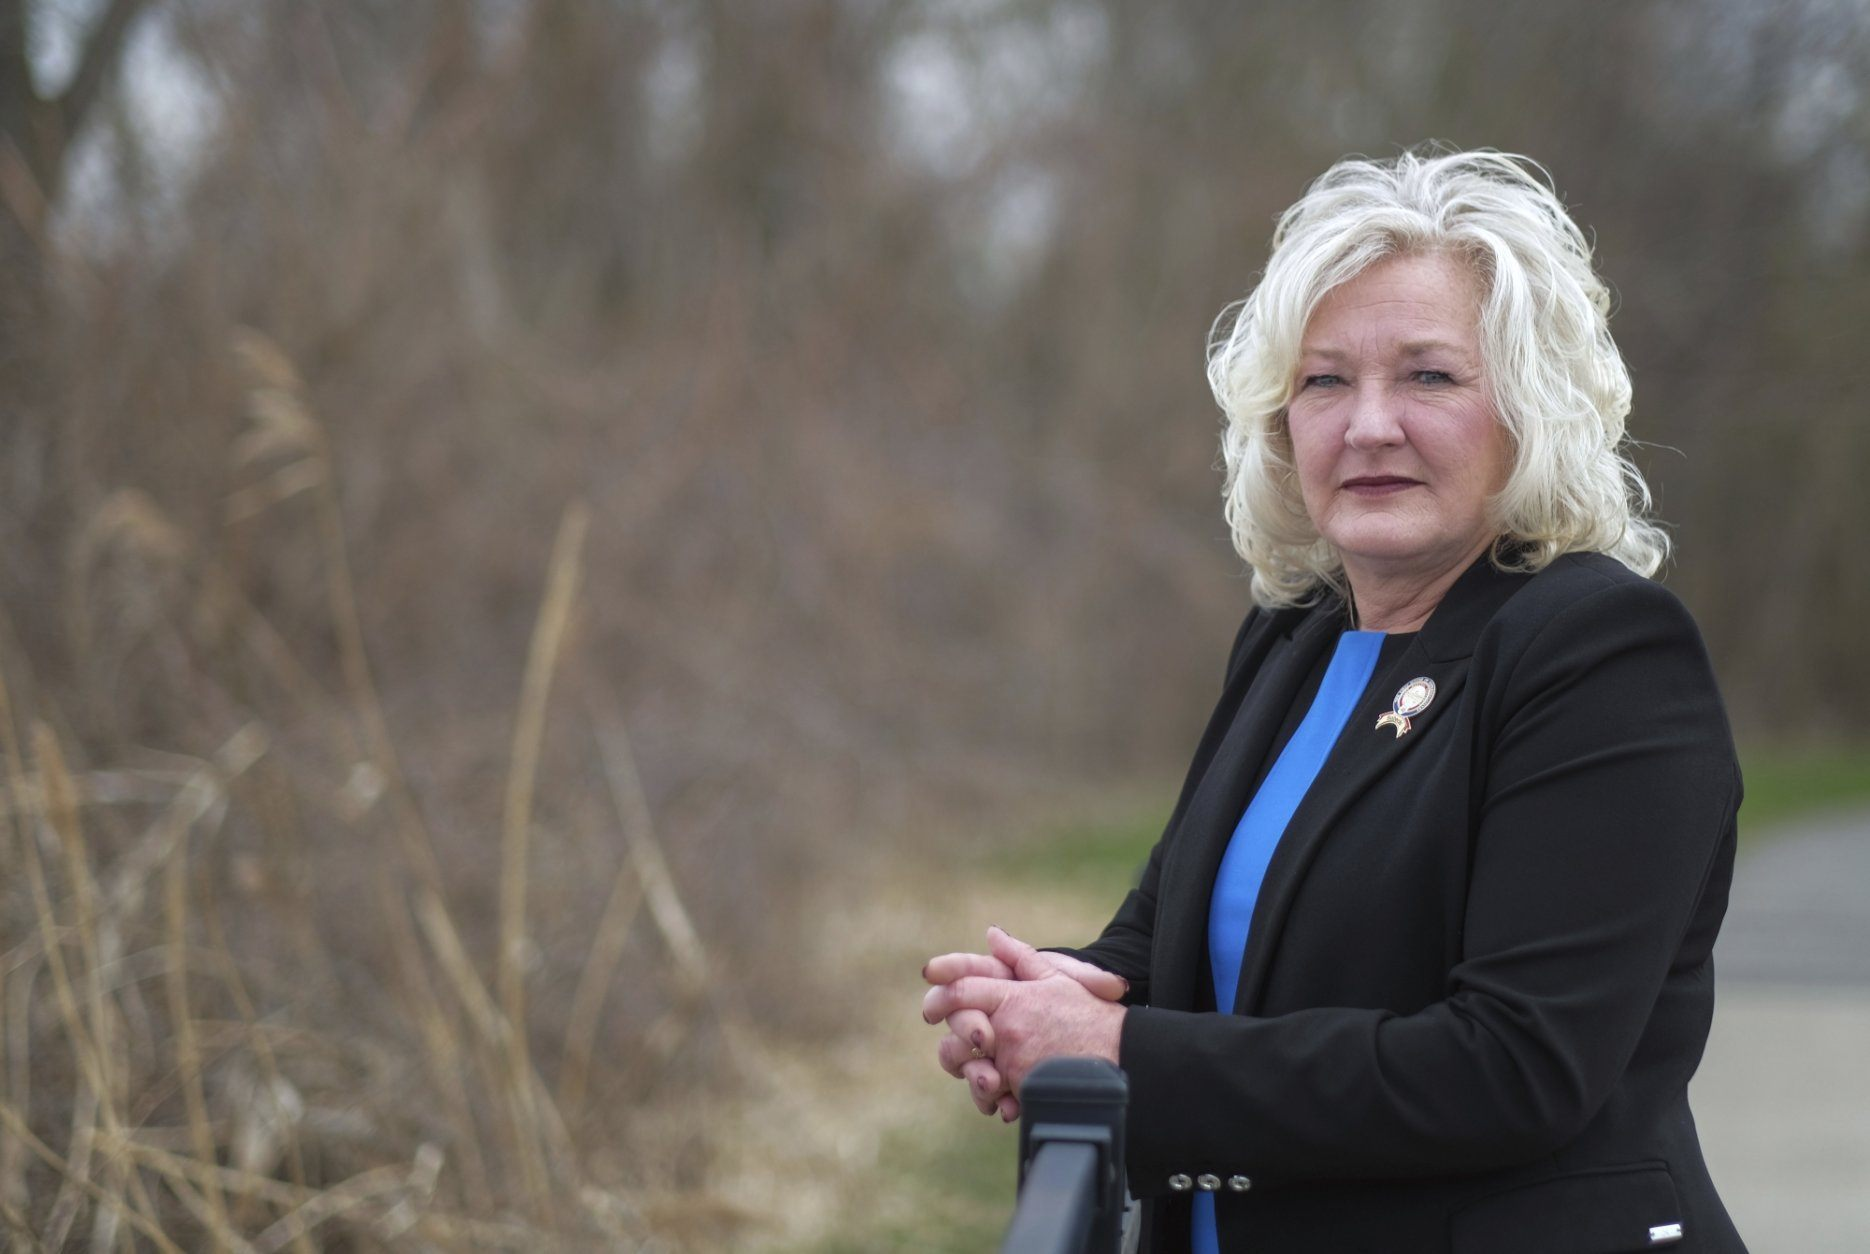 In this April 16, 2019, photo, State Rep. Lisa Sobecki, D-Toledo, poses for a photo at Bay View Park in Toledo, Ohio. She shared her story of a rape and subsequent abortion on the House floor during deliberations on the heartbeat abortion ban. (Jeremy Wadsworth/The Blade via AP)